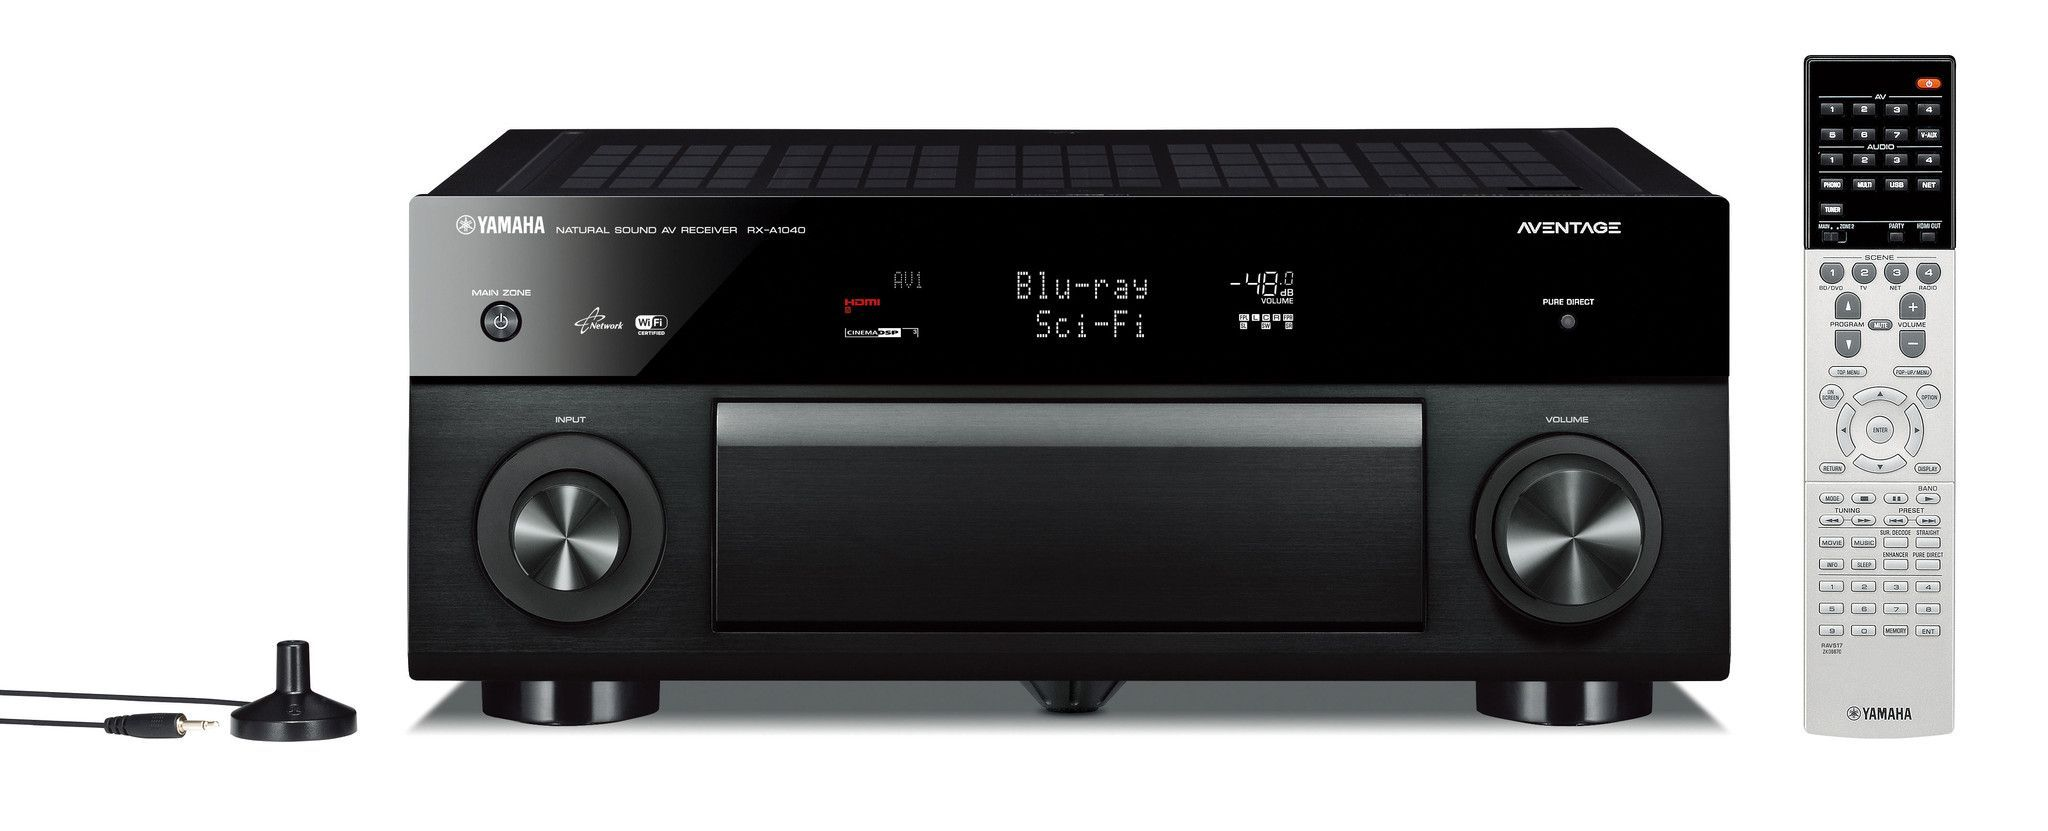 Yamaha RX-A1040 Aventage Network AV Receiver